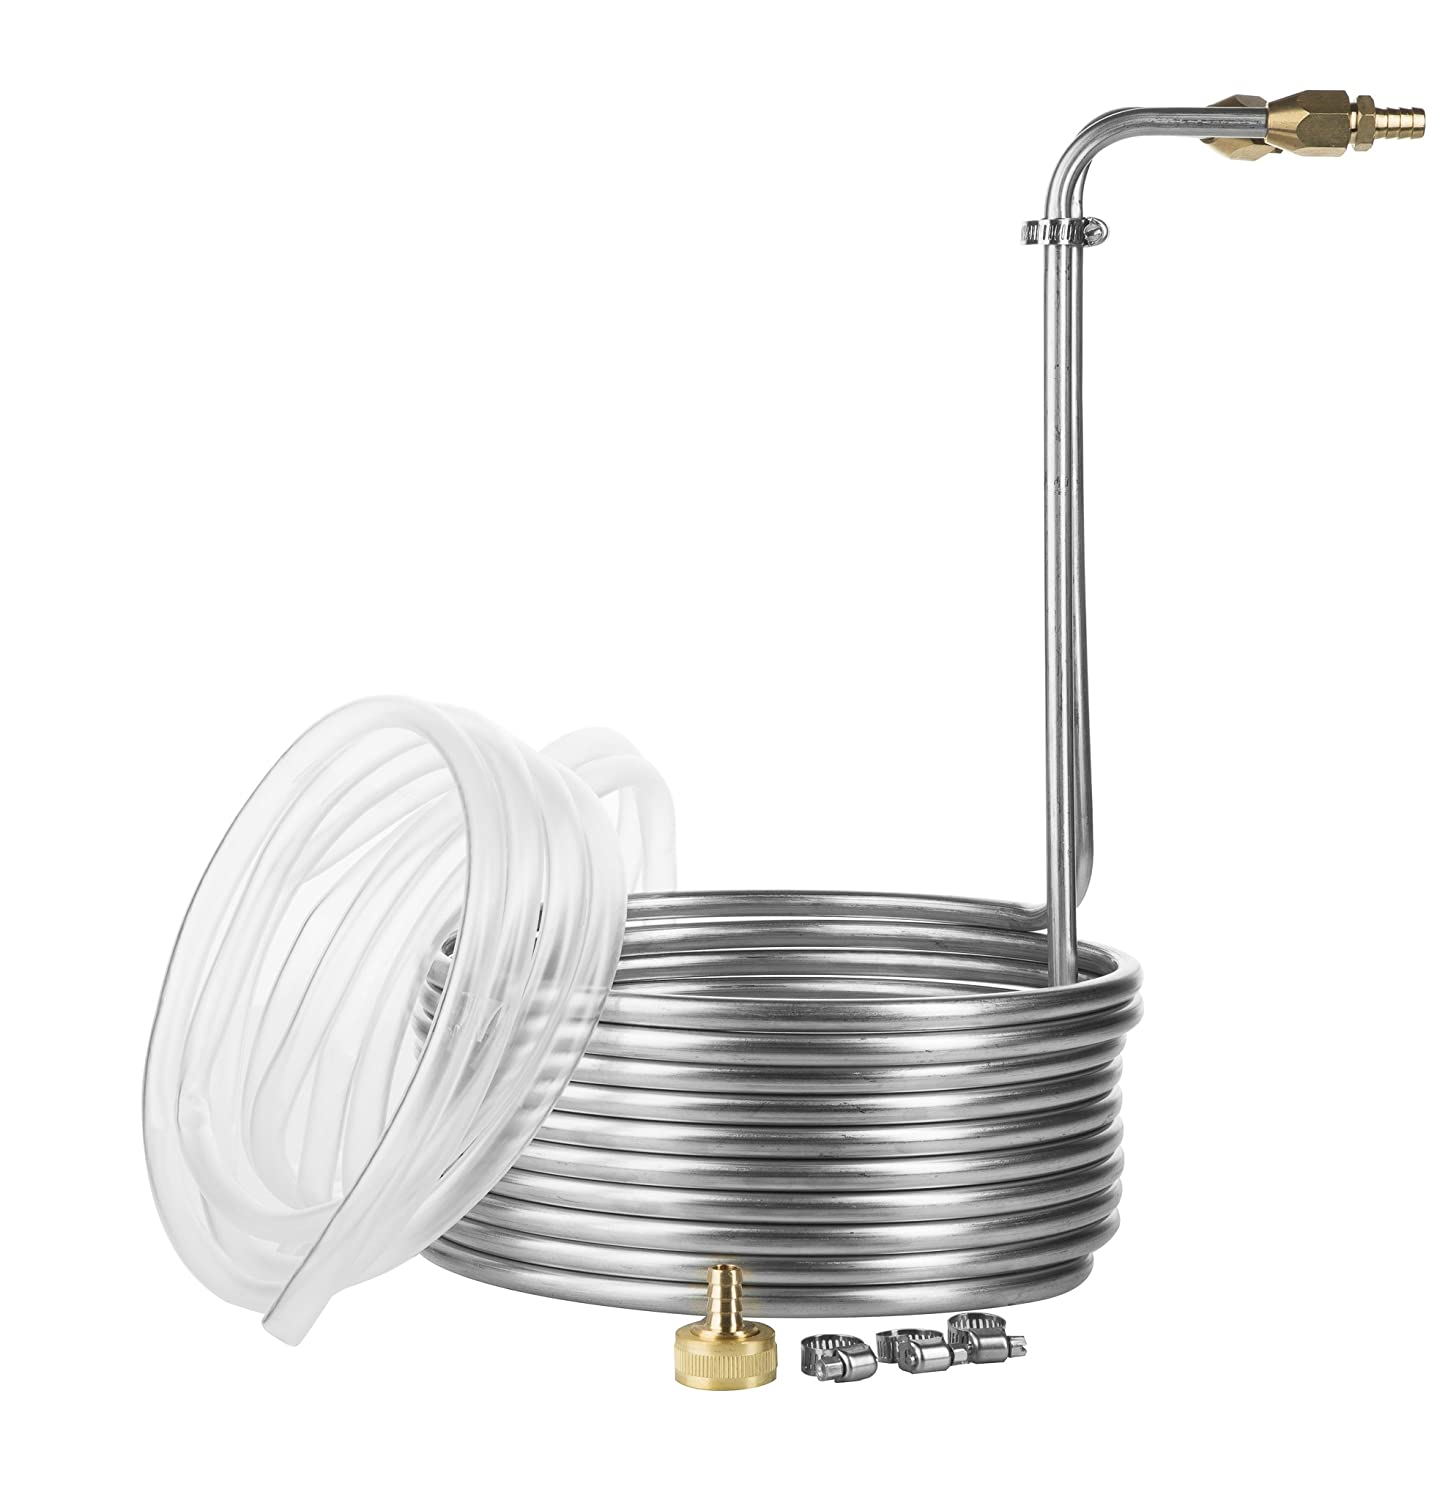 25 Foot Stainless Steel Immersion Wort Chiller with No-leak Fittings and Accessories JockeyBox.com WC-25SS38